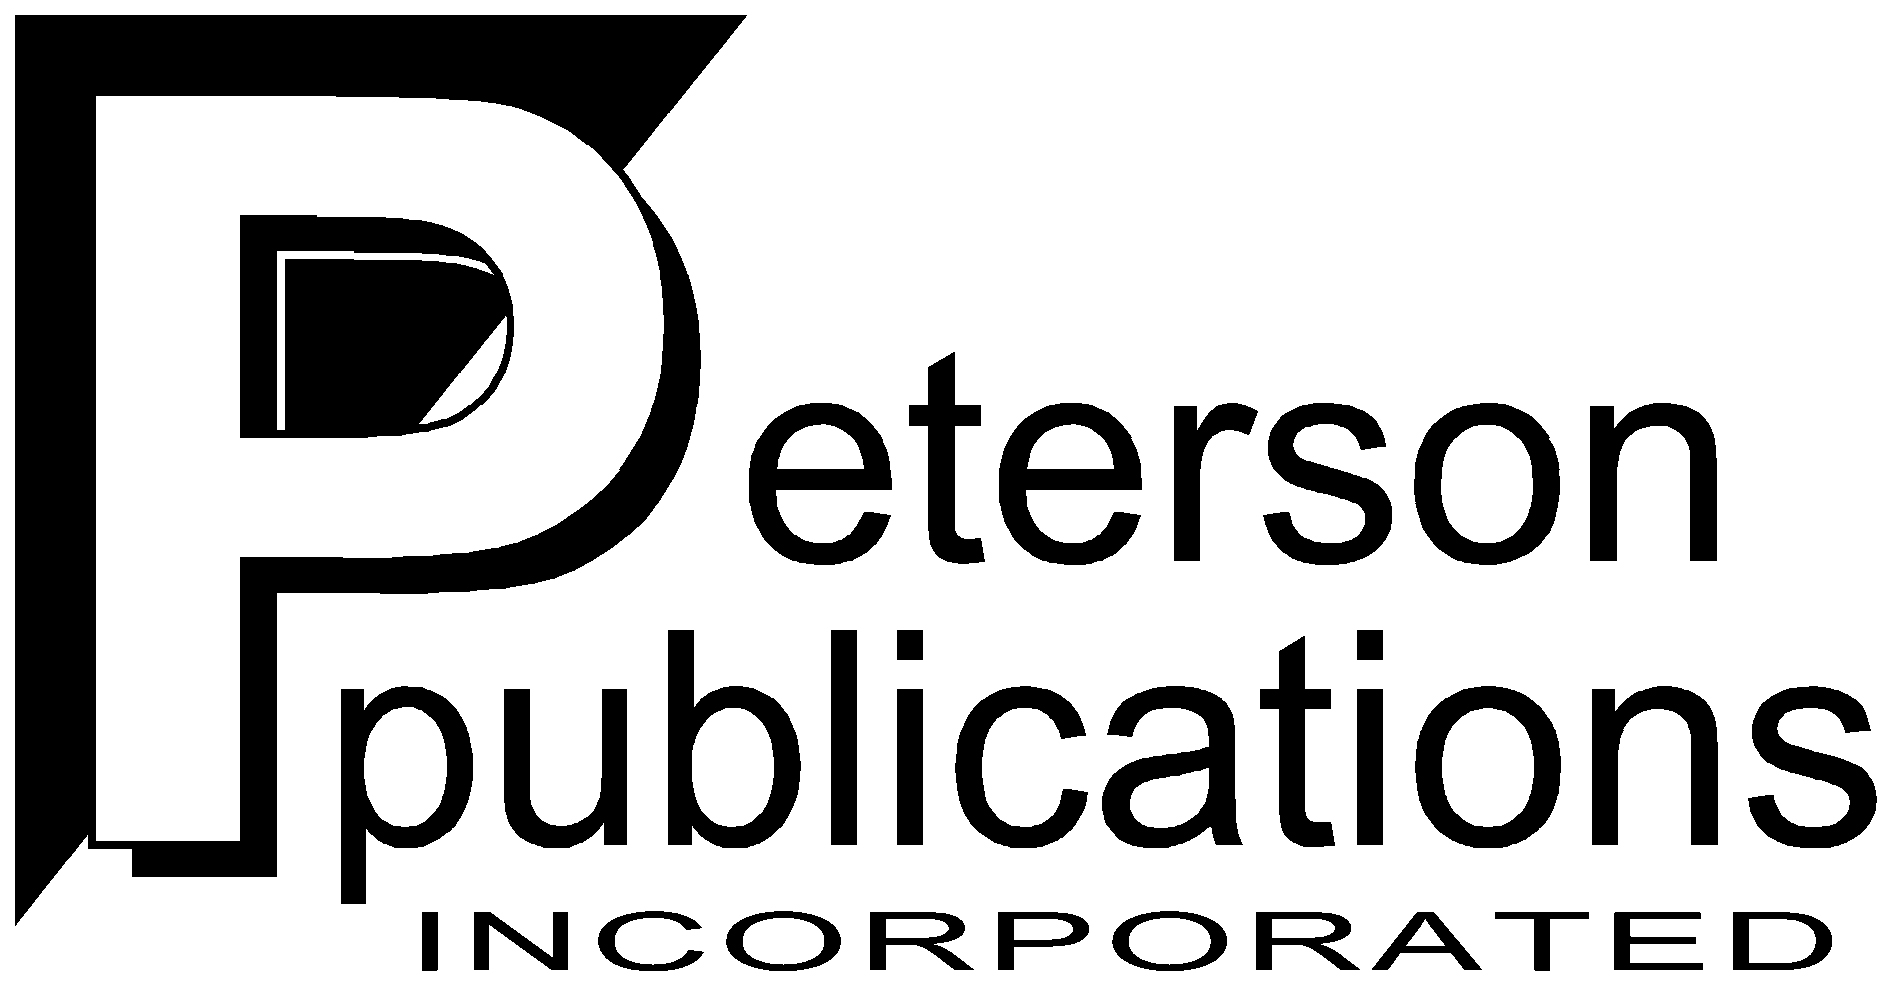 PetersonPublications bw logo